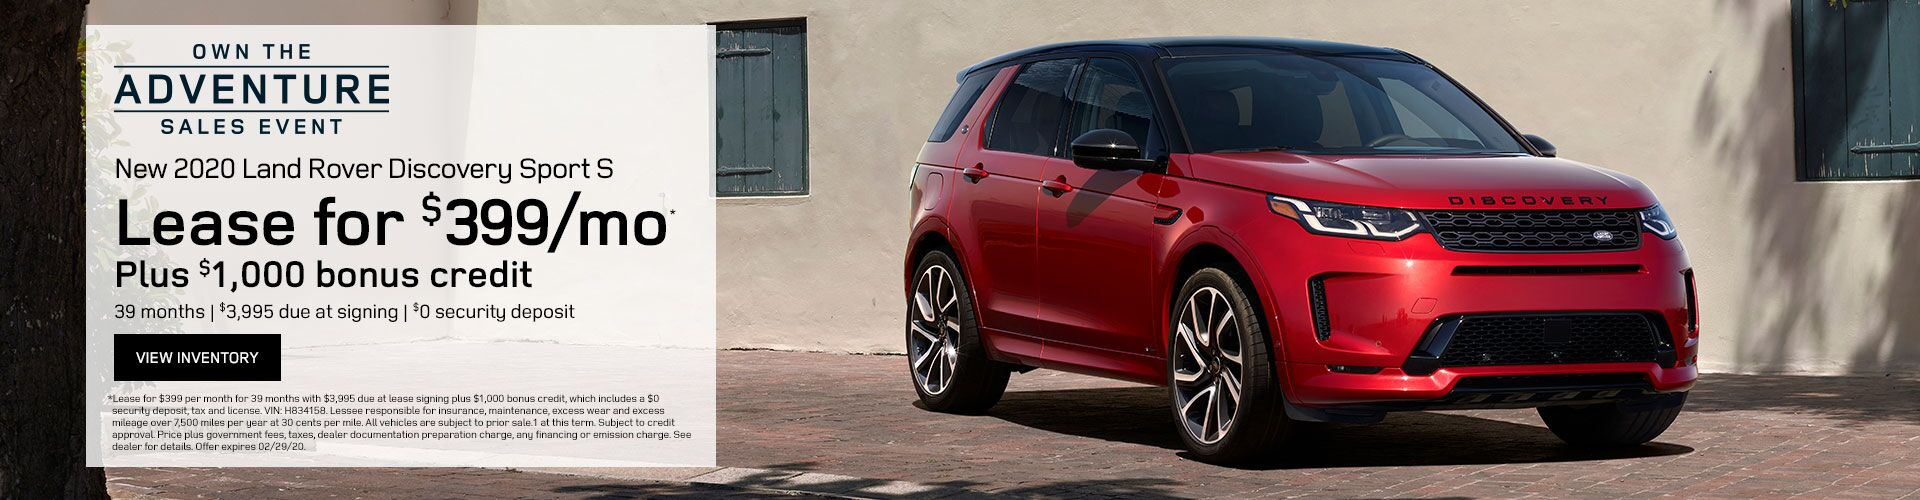 February Discovery Sport